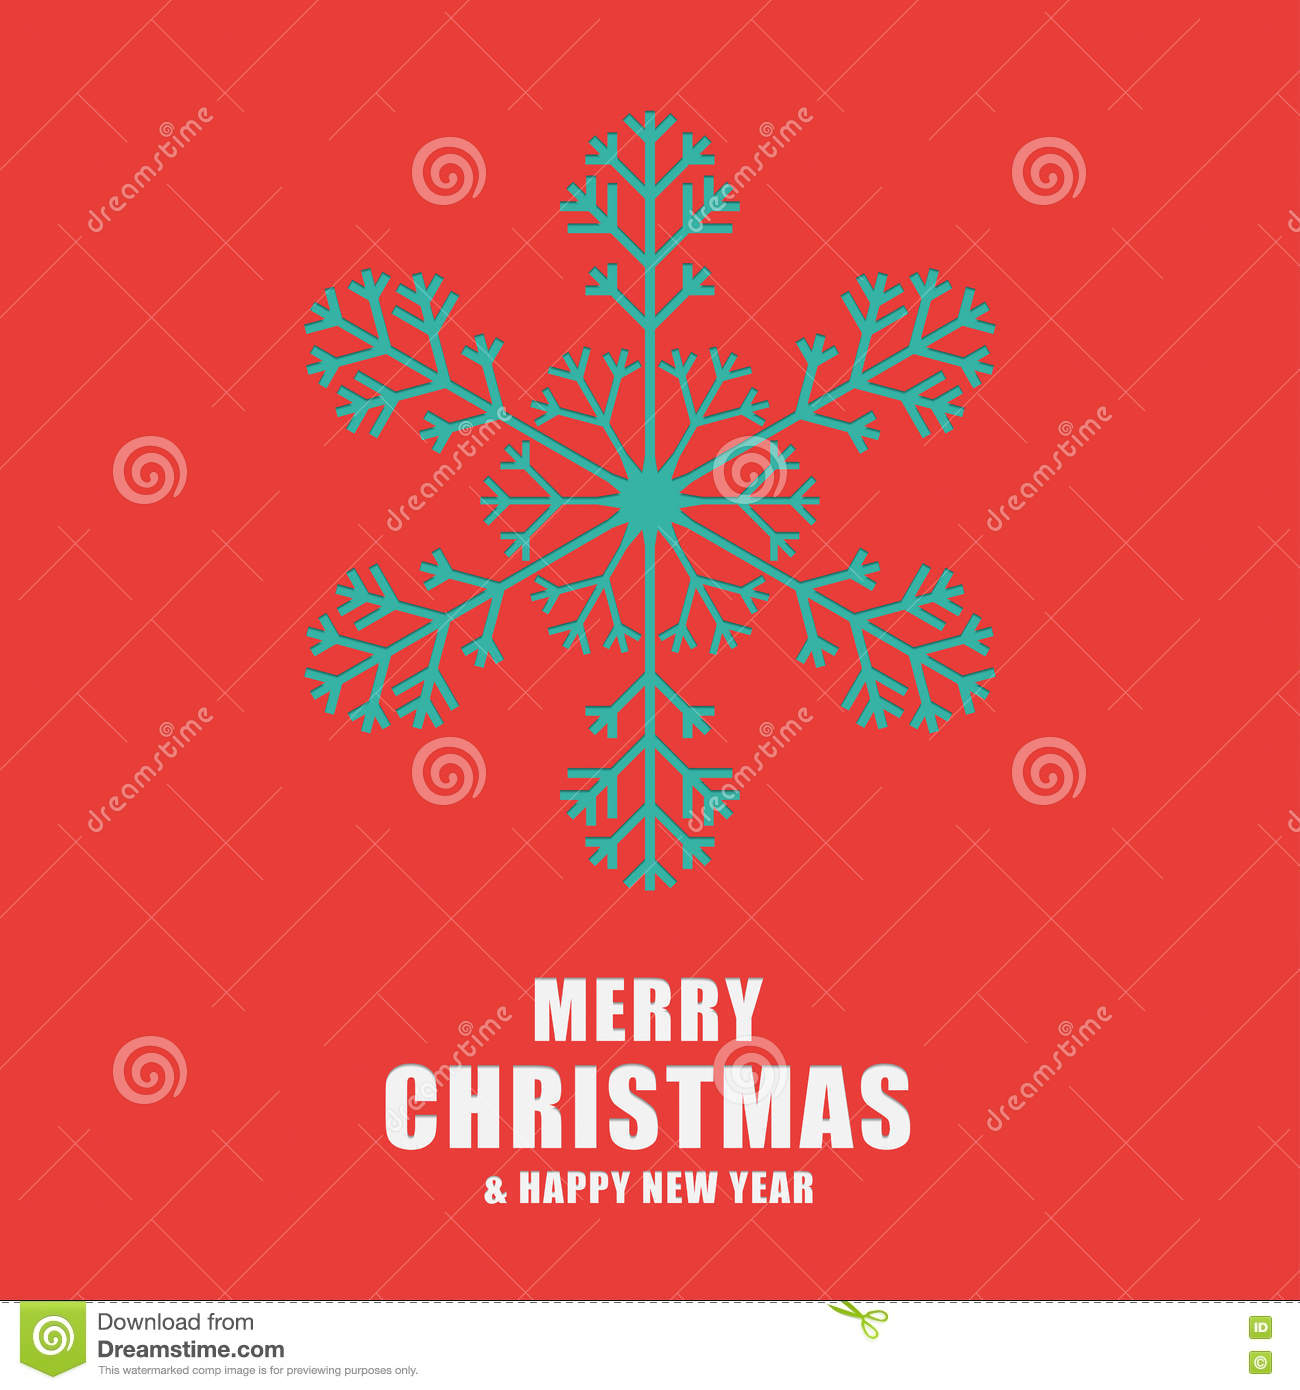 christmas and new year greeting card template snowflakes laser cut and engraved stencil for paper plastic wood laser cut acrylic vector illustration